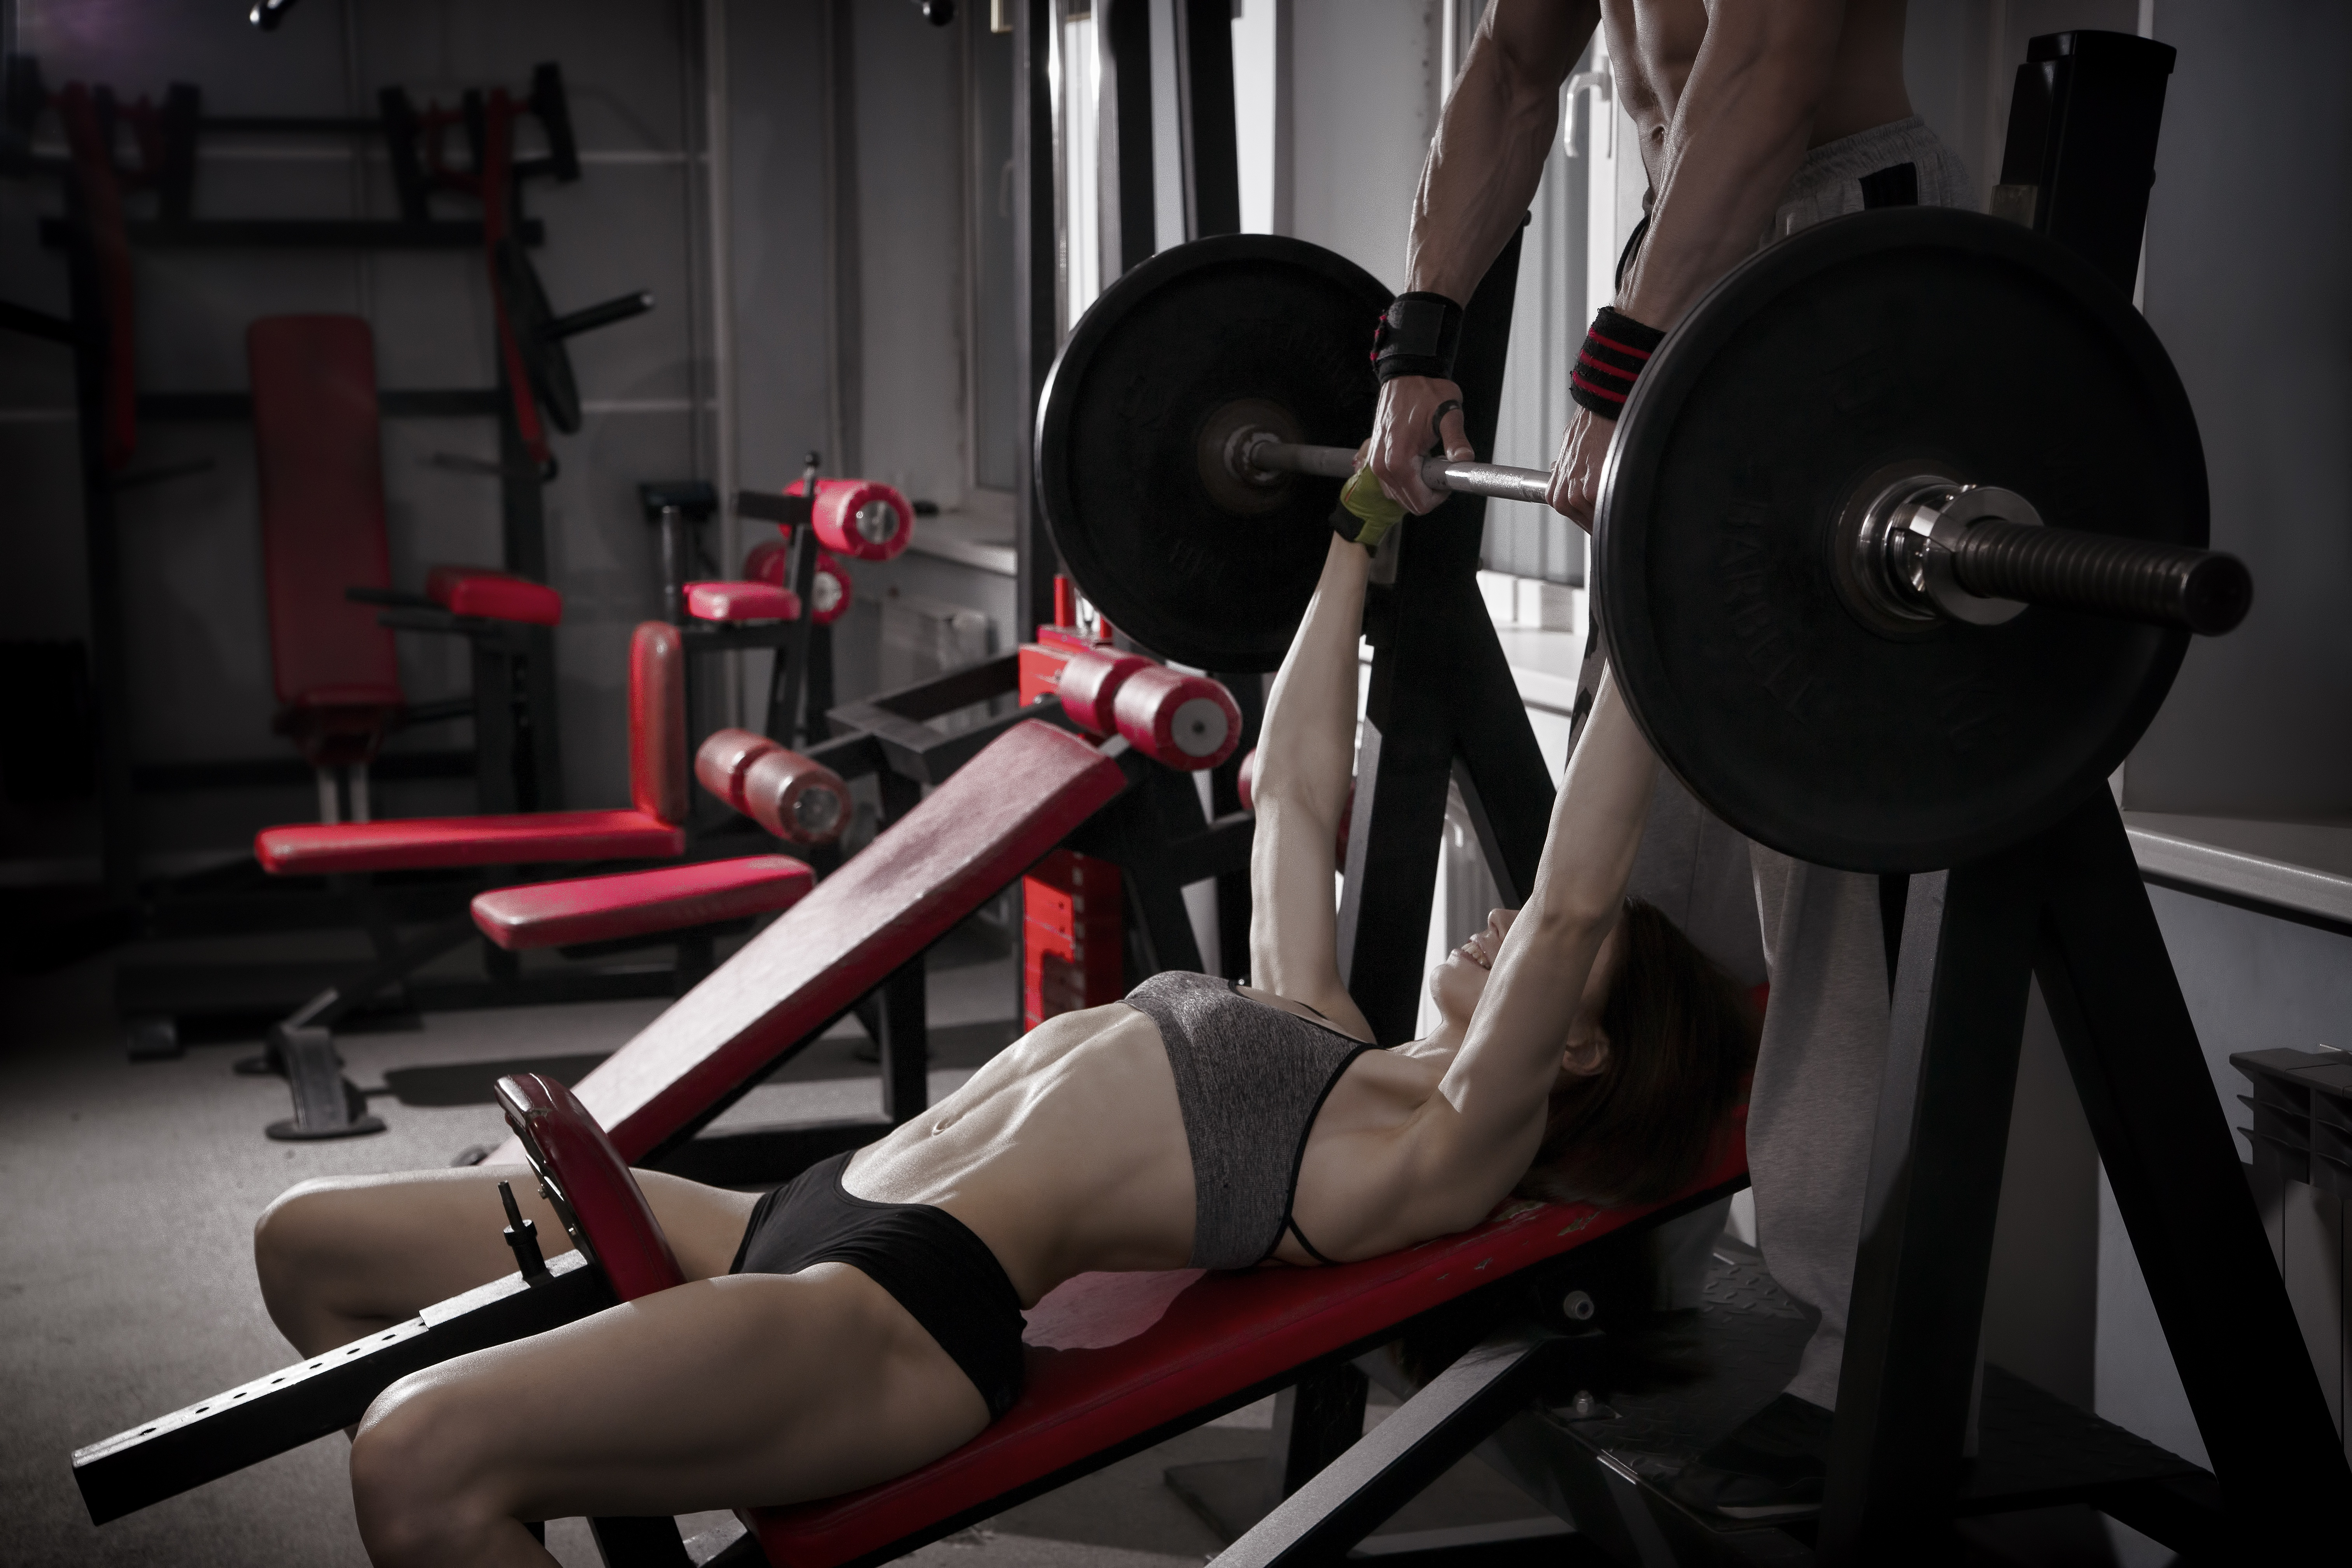 Image: Girl, man, support, gym, barbell, bench press, smile, figure, fitness equipment